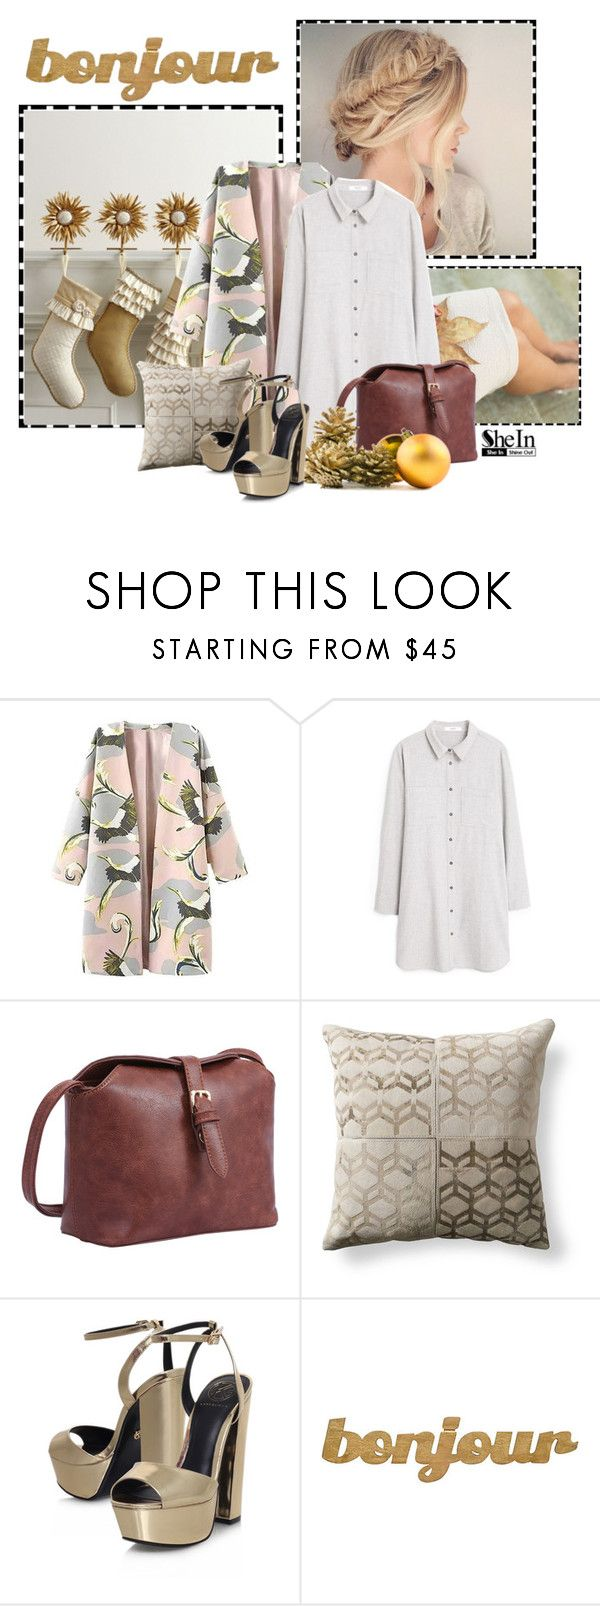 """""""Bonjour!"""" by euro-filou ❤ liked on Polyvore featuring MANGO, Grandin Road, KG Kurt Geiger, Slippin' Southern, contest and shein"""